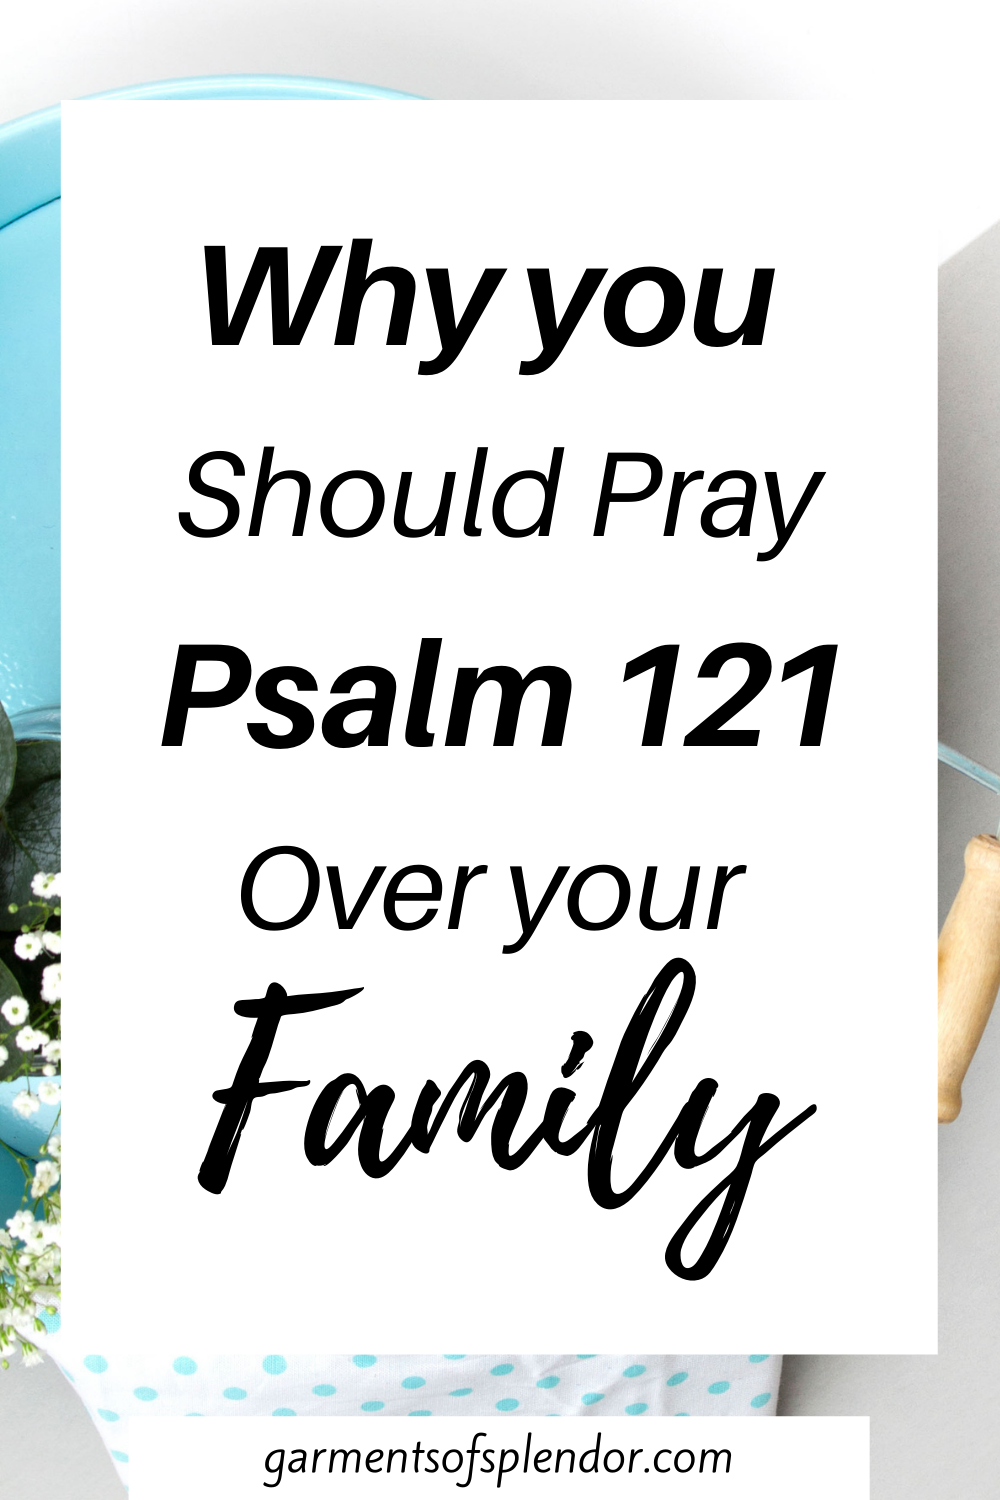 How to Pray Psalm 121 Over your Family